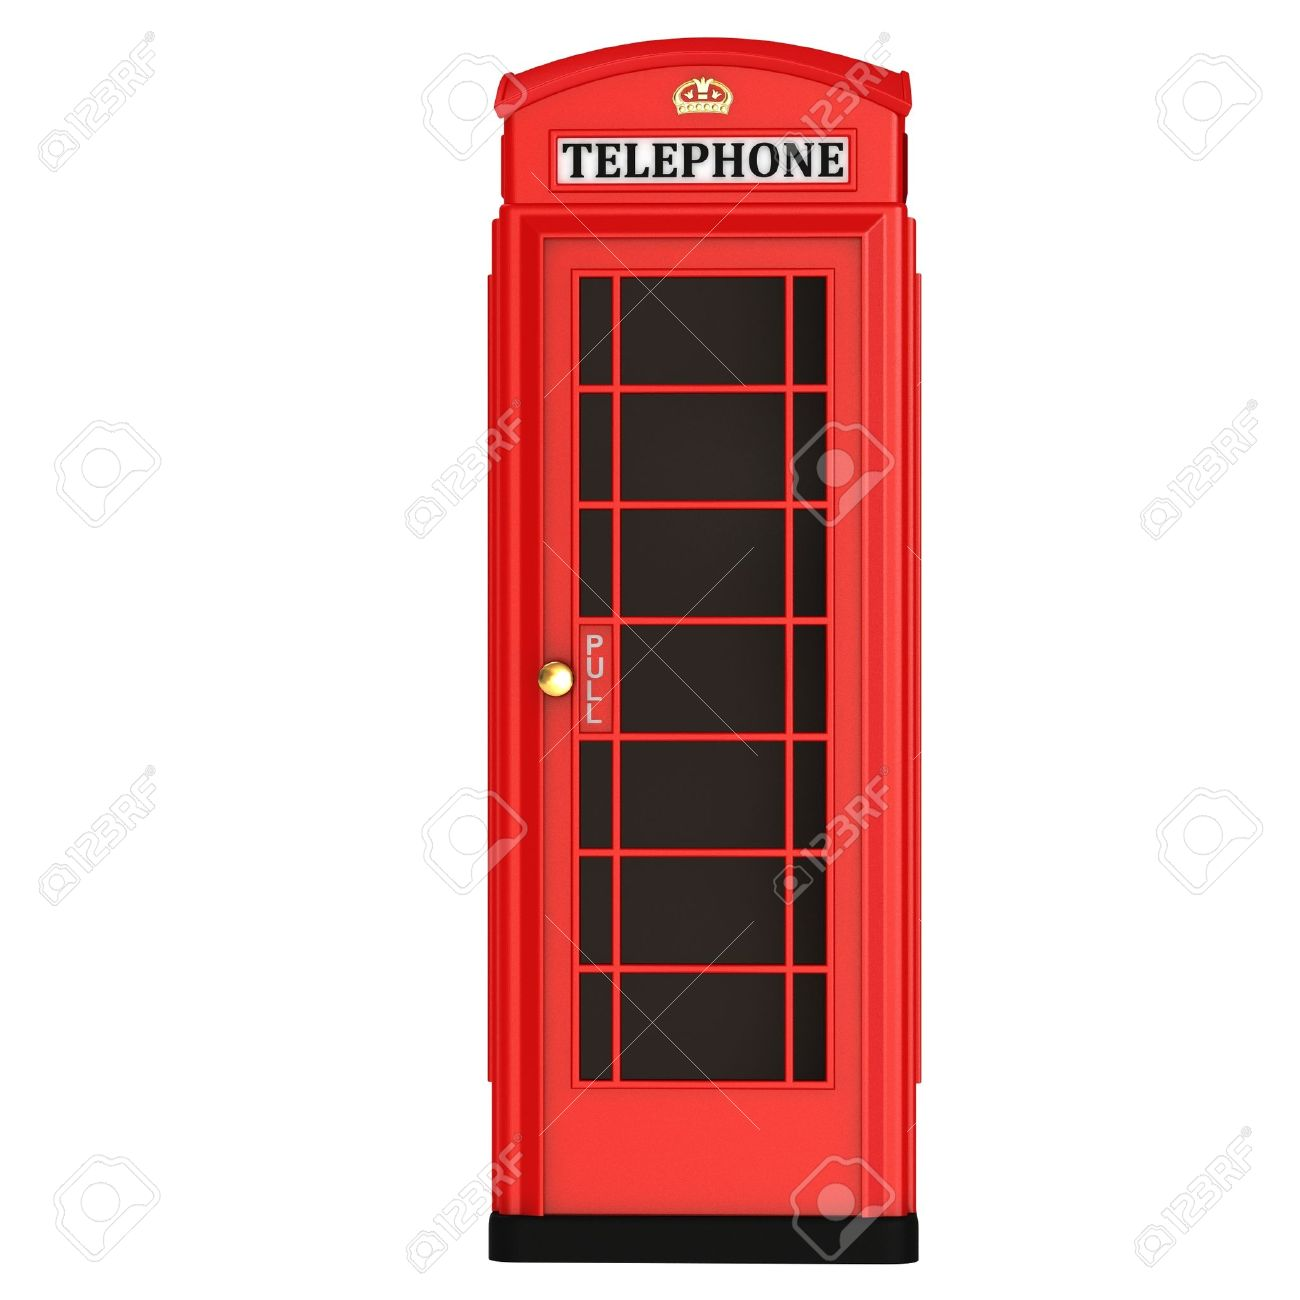 The British red phone booth isolated on a white background Stock Photo - 11957589